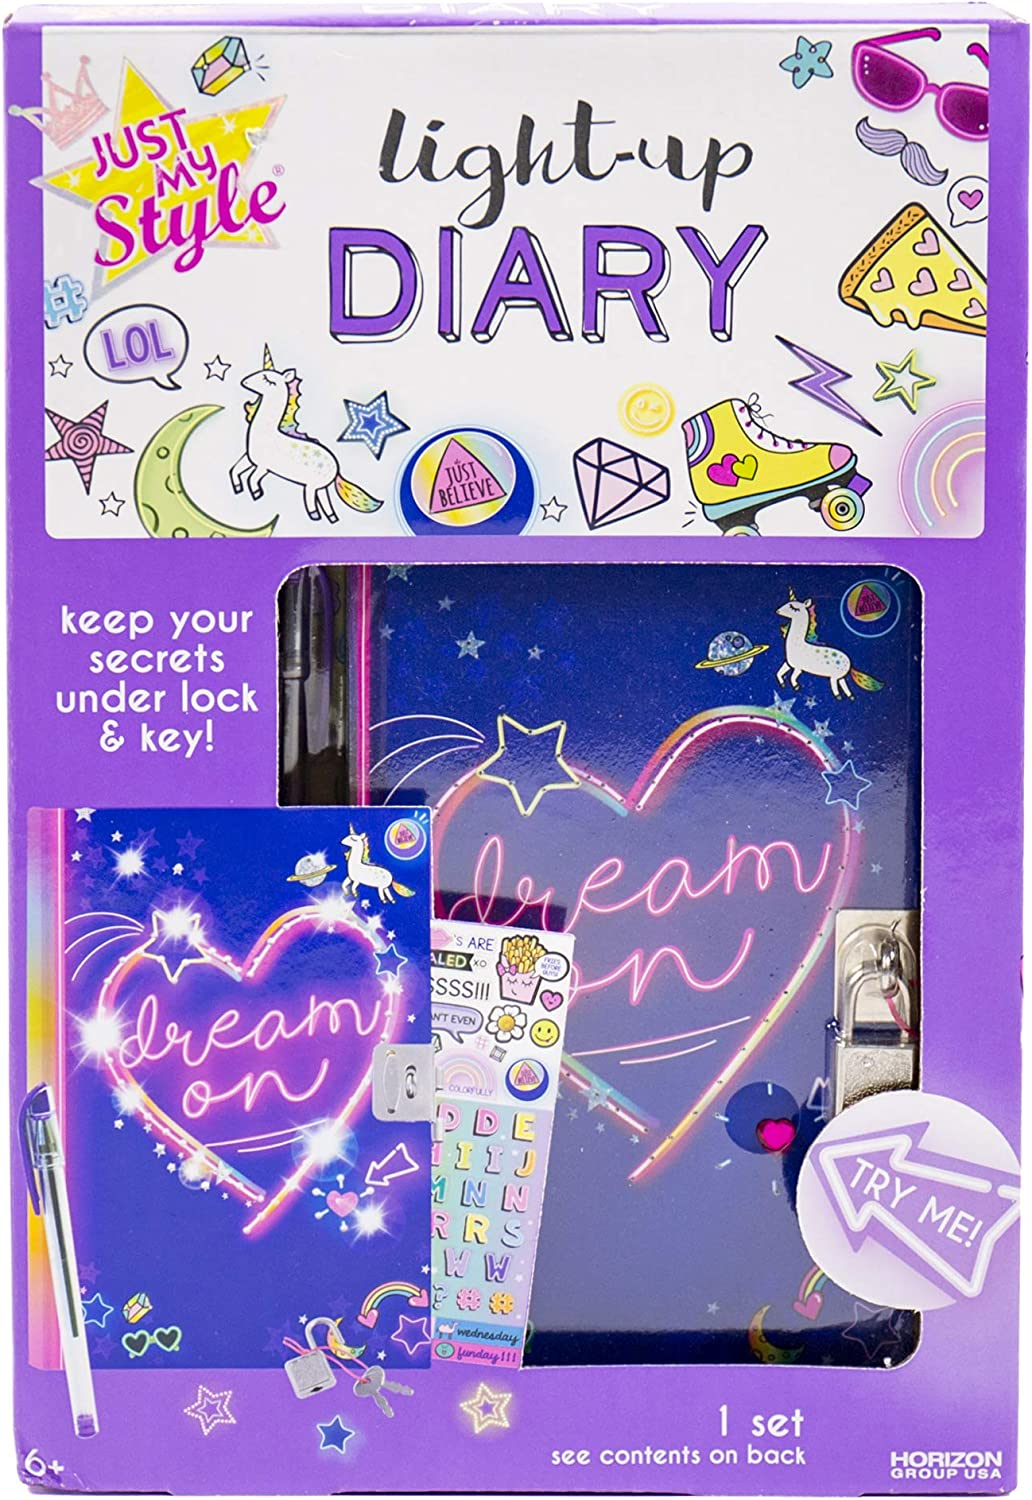 Just My Style Light Up Diary By Horizon Group Usa, Keep Your Secrets Under Lock & Key! Write Your Secret Messages & Decorate Pages with Colorful Stickers! Light Up Cover